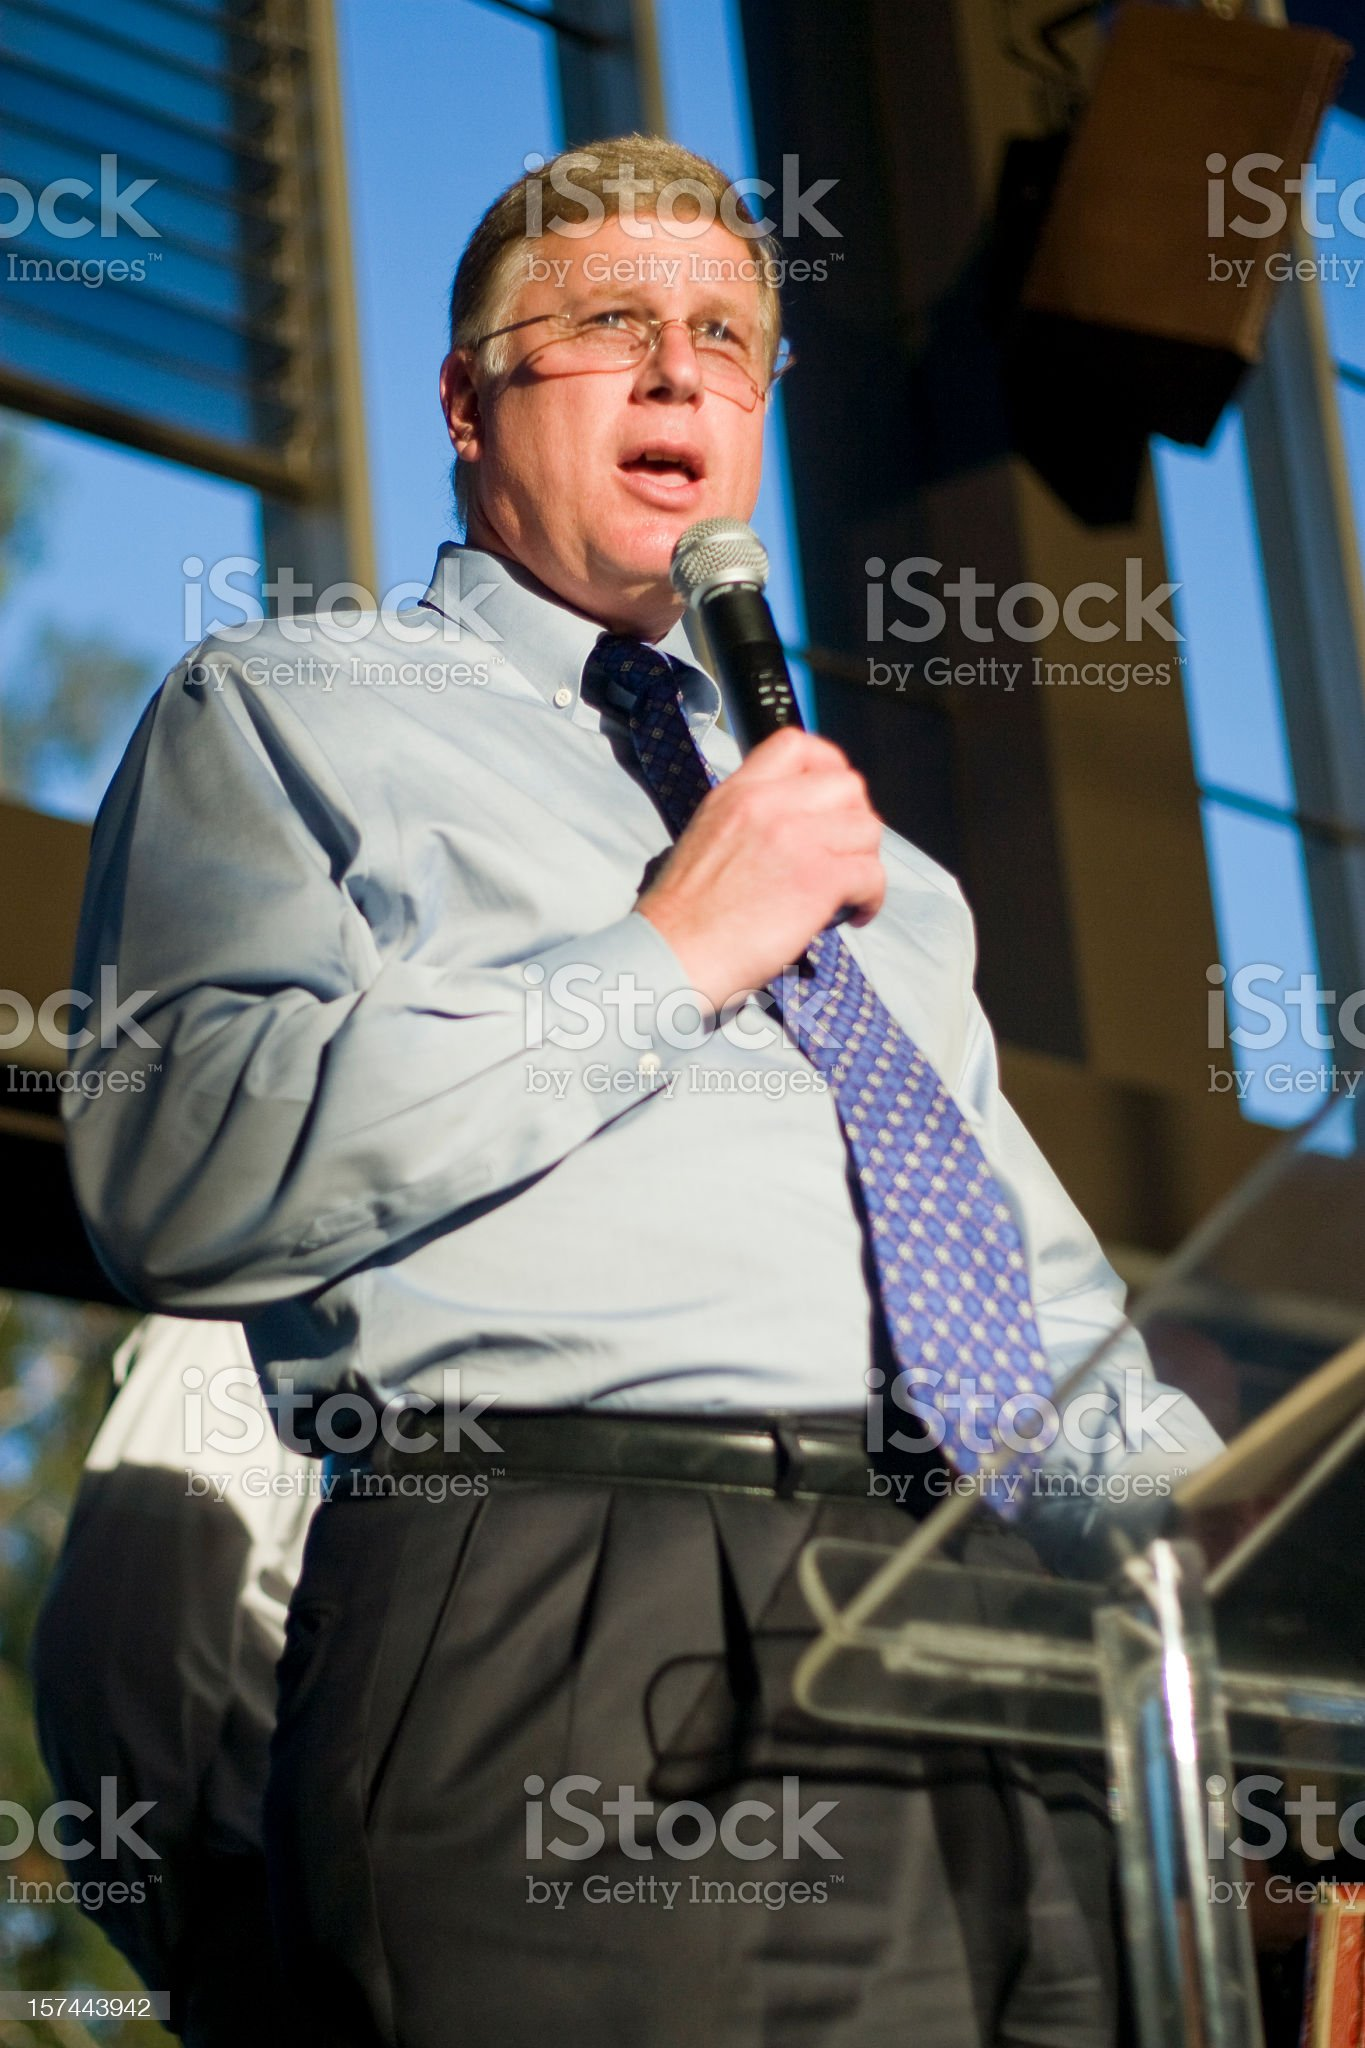 Business Speaker royalty-free stock photo